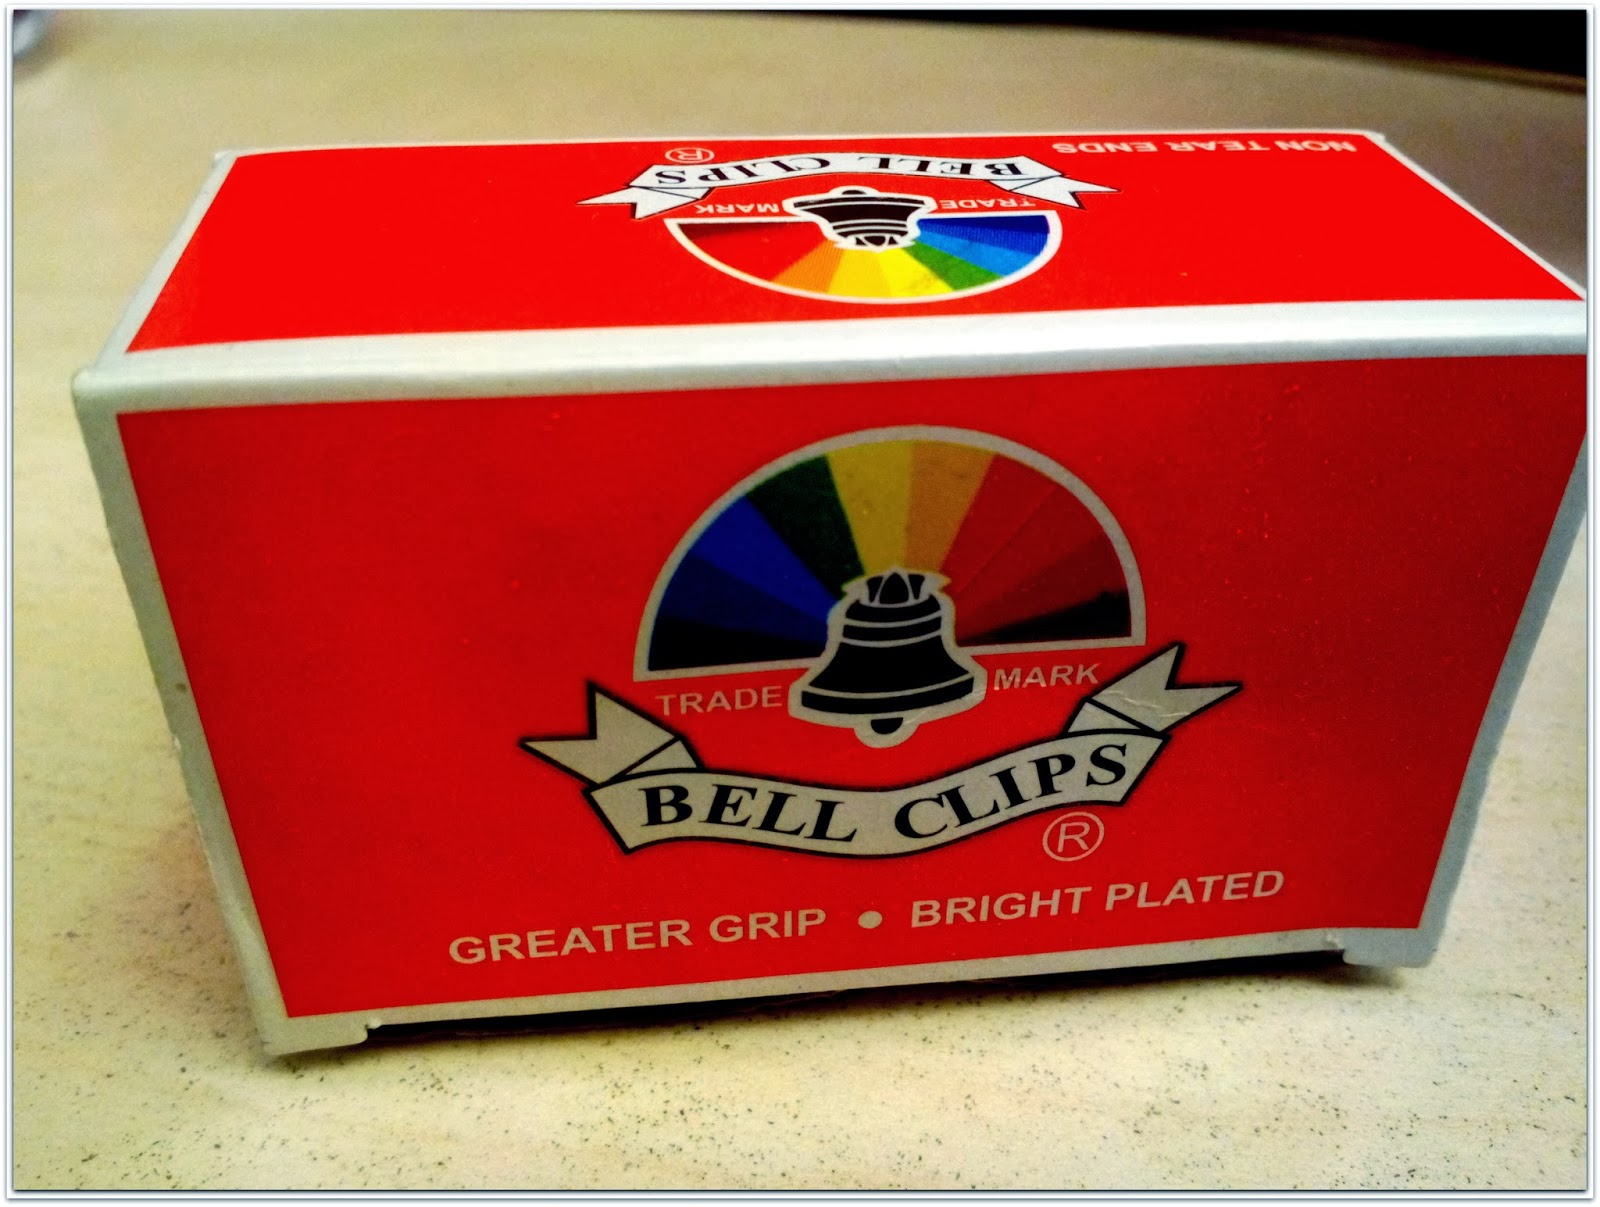 Bell Paper Clips